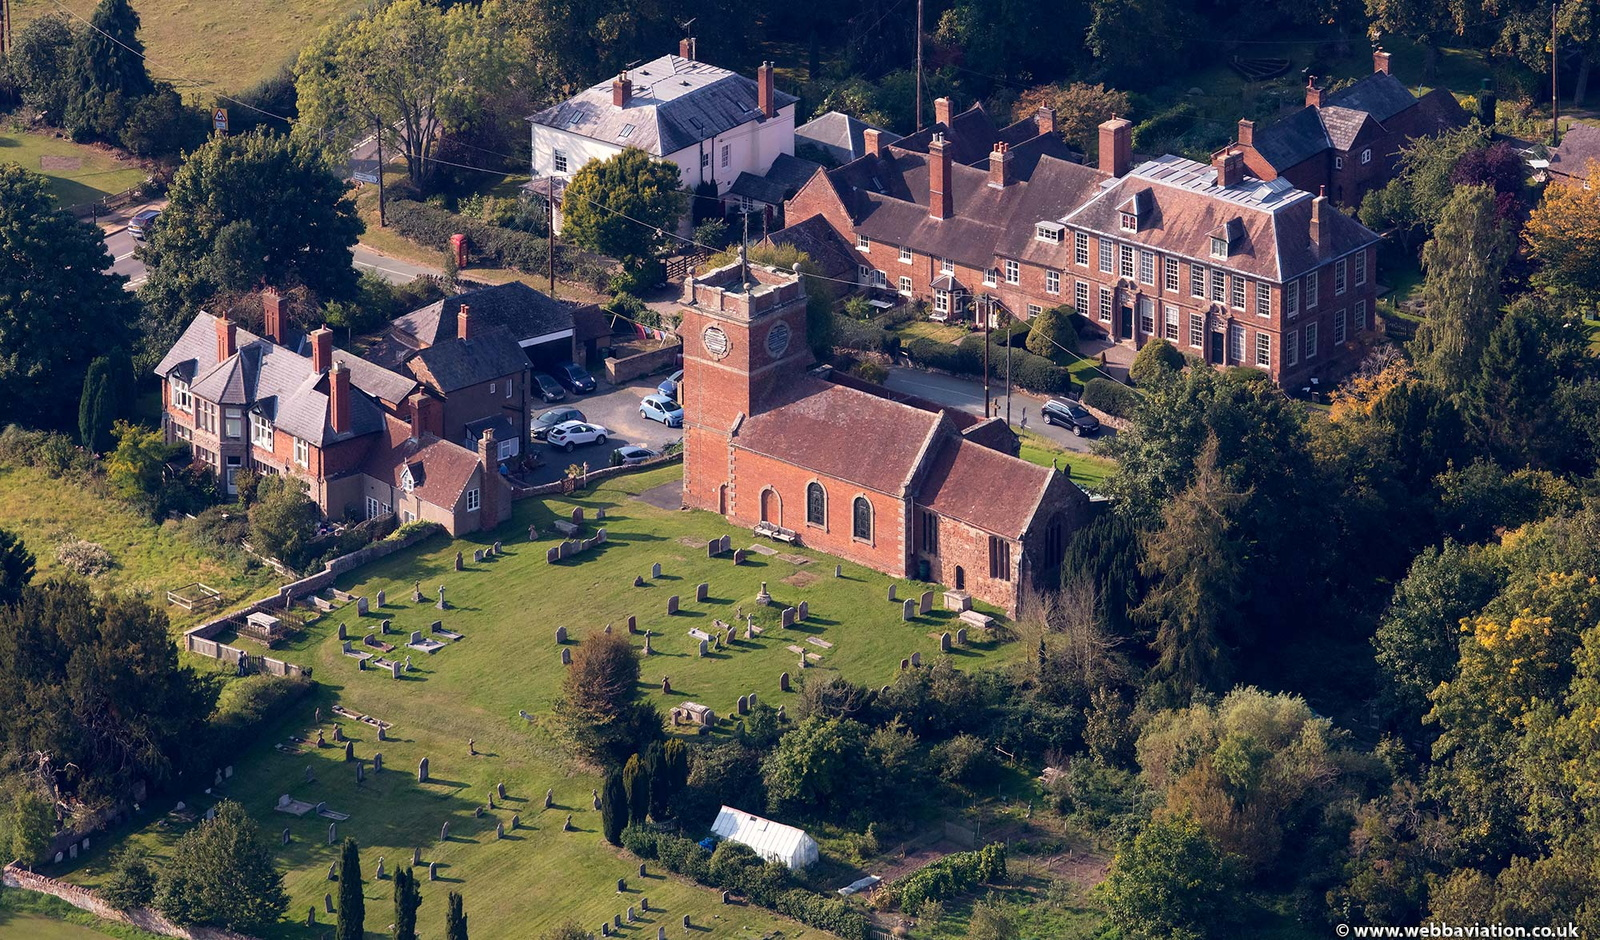 St Andrews Church Quatt Shropshire from the air